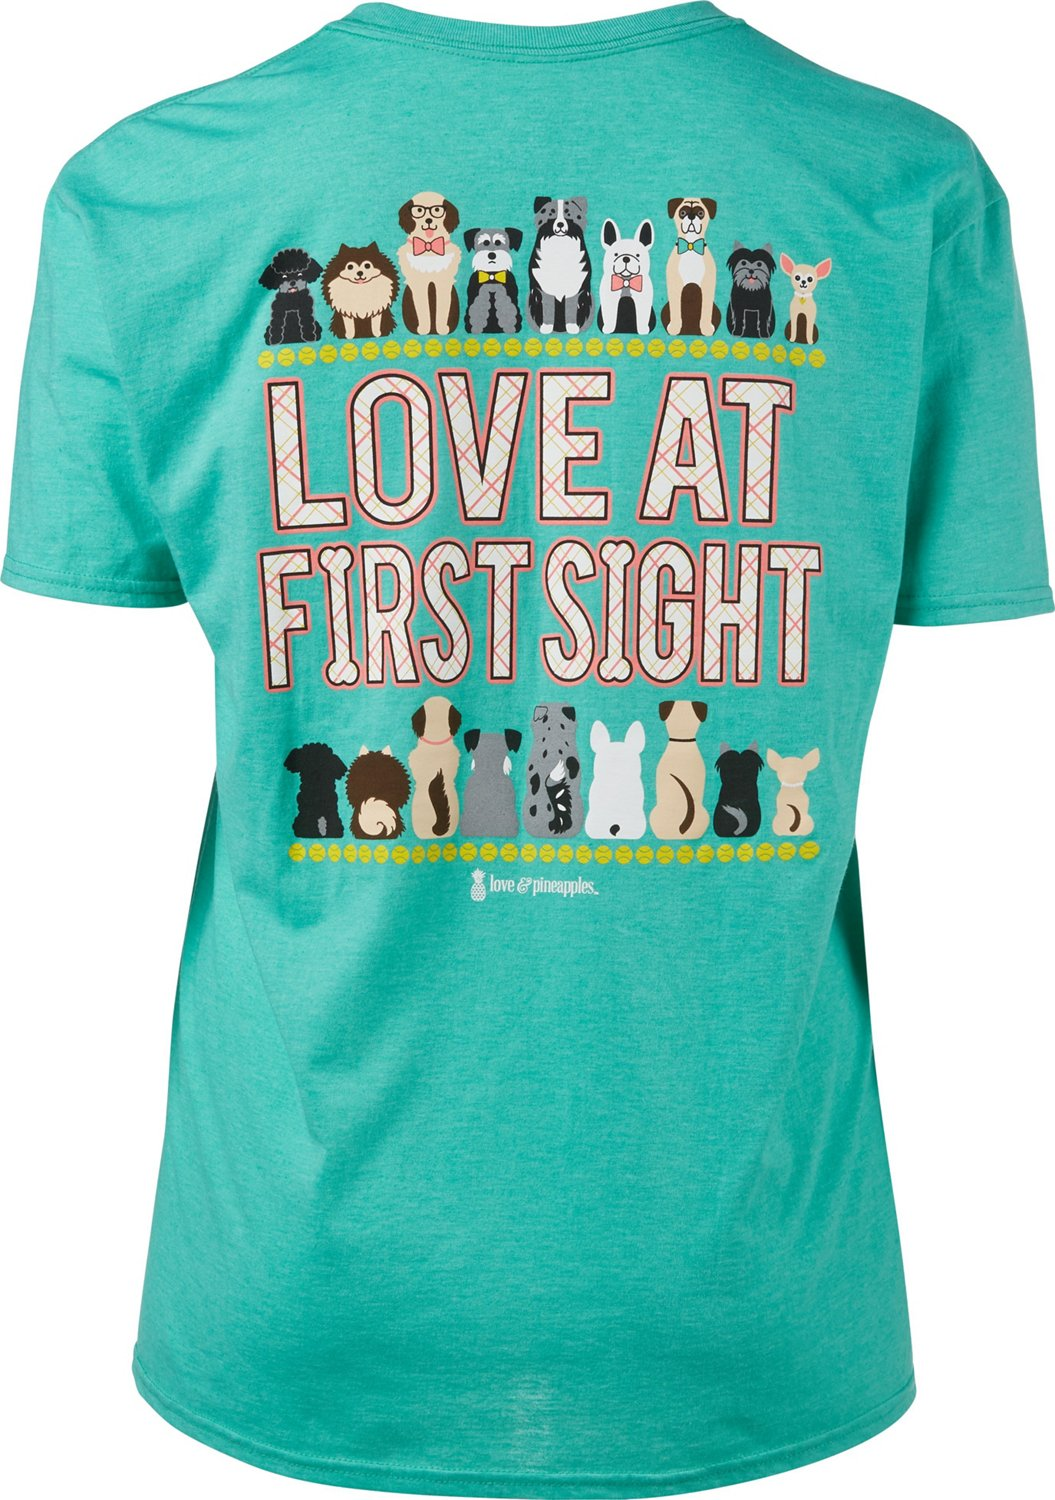 1c33fc05 Display product reviews for Love & Pineapples Women's Love at First Sight T- shirt